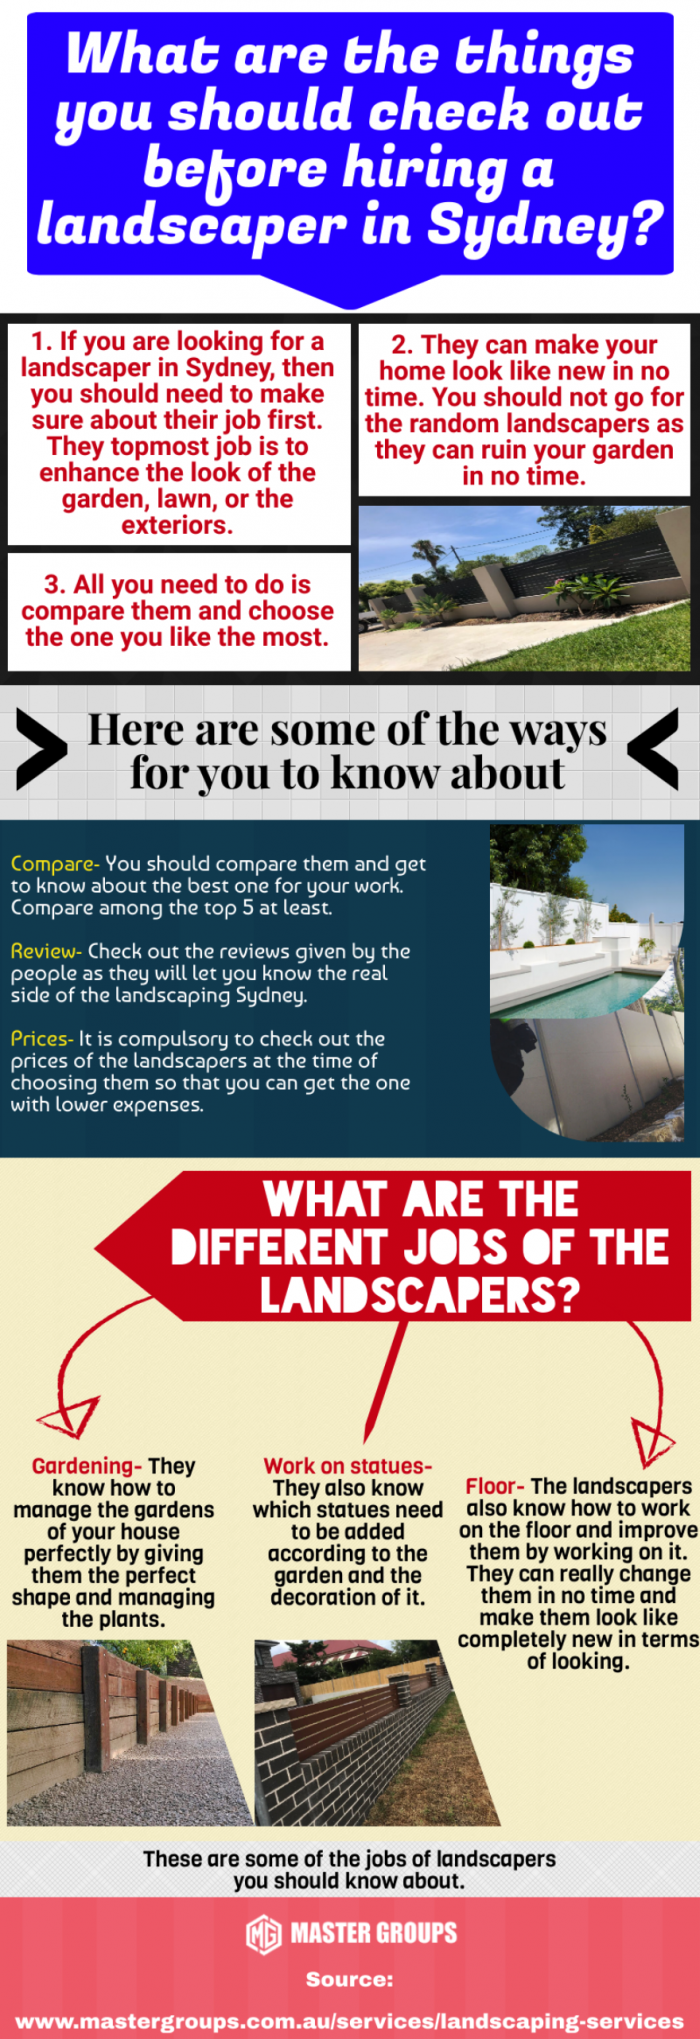 Here are some facts about landscape designers